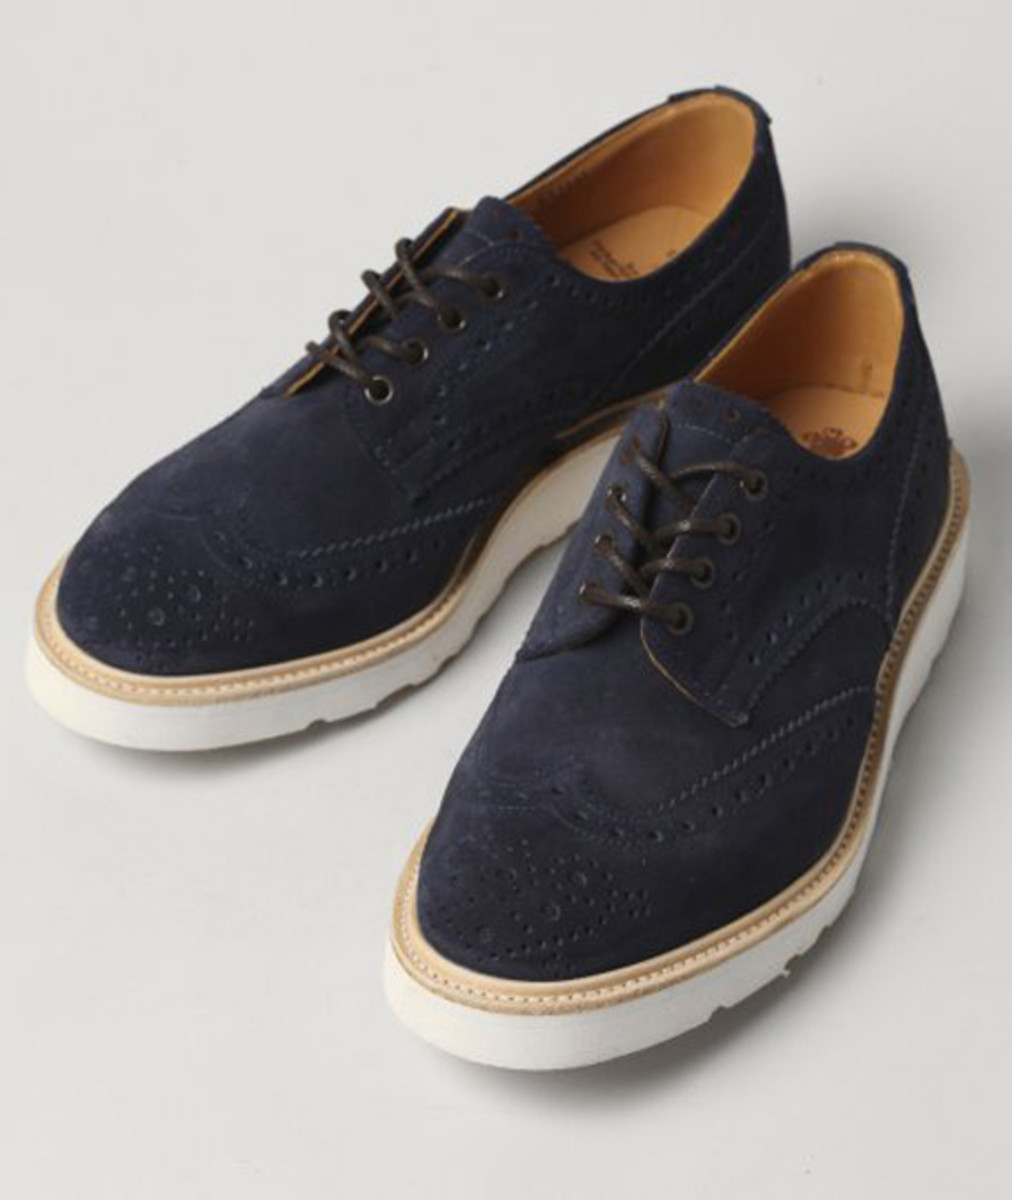 trickers-x-norse-projects-01